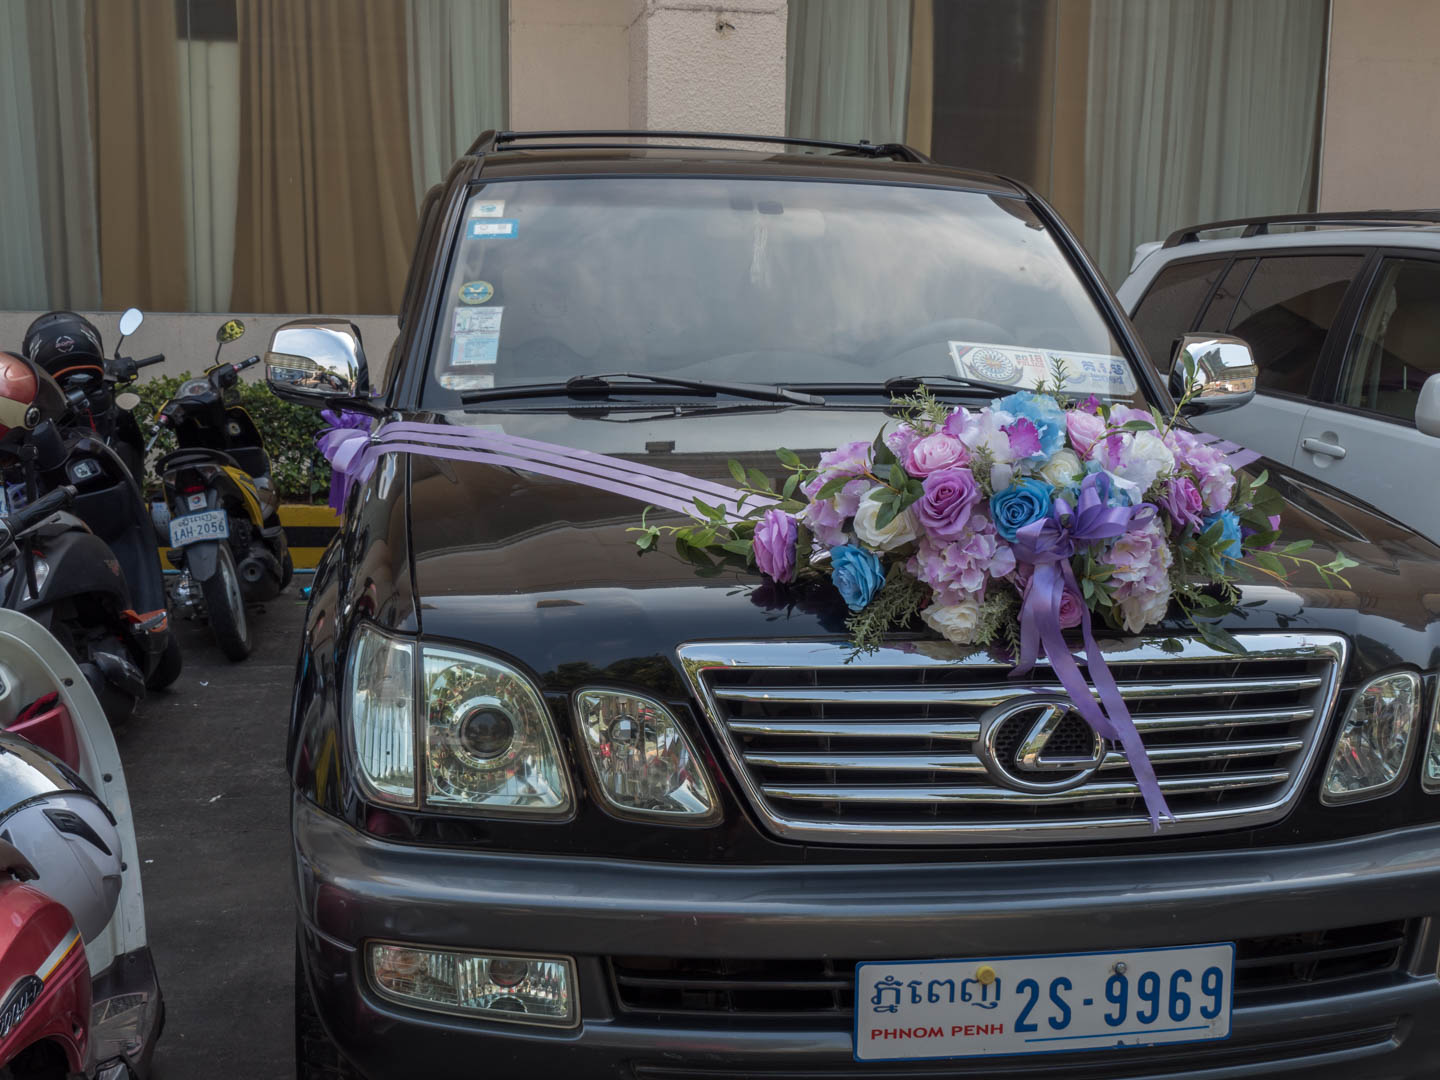 truck decorated with flowers for a wedding